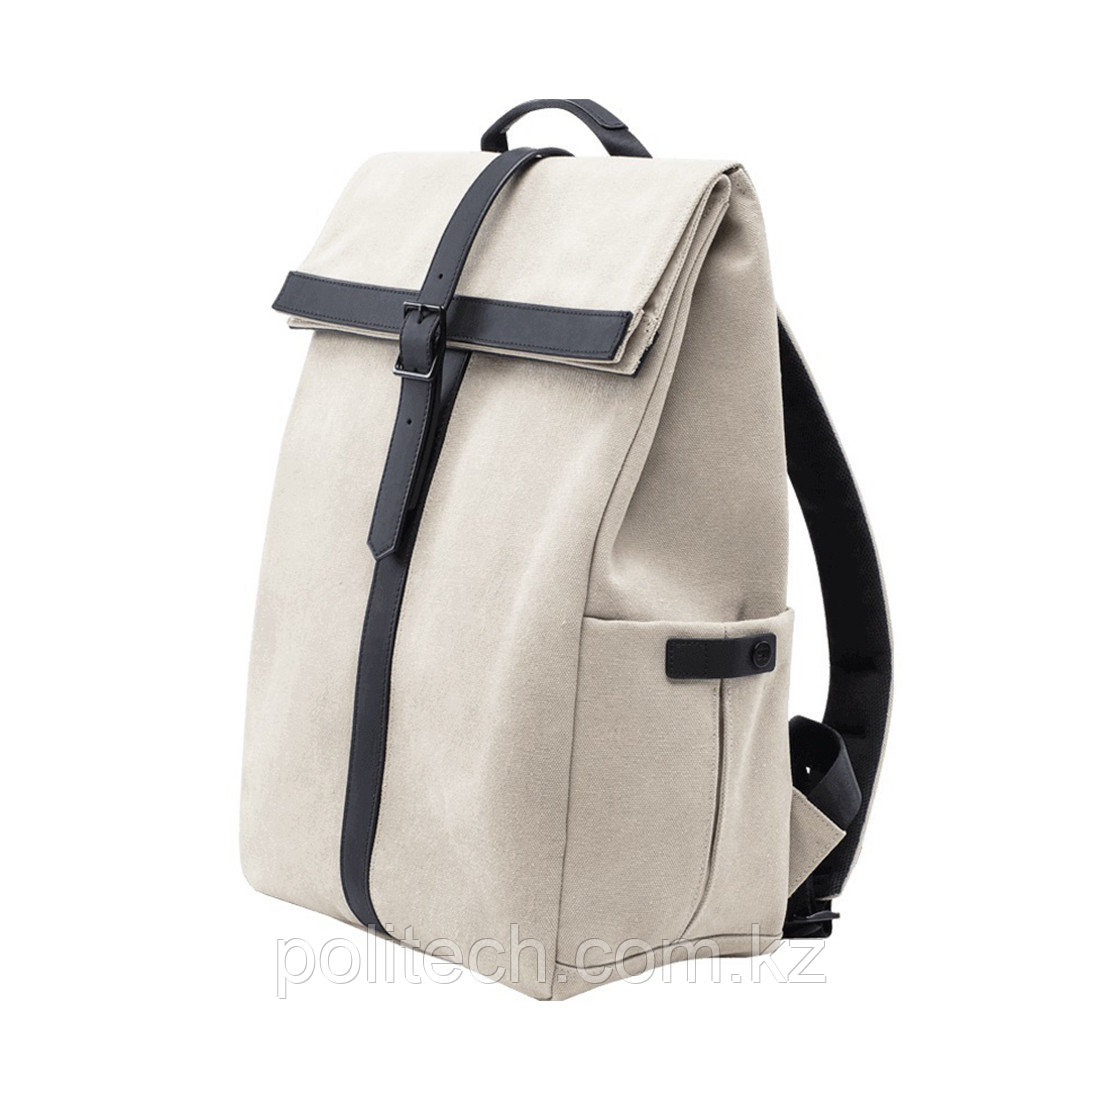 Рюкзак Xiaomi RunMi 90 Points GRINDER Oxford Leisure Backpack Белый